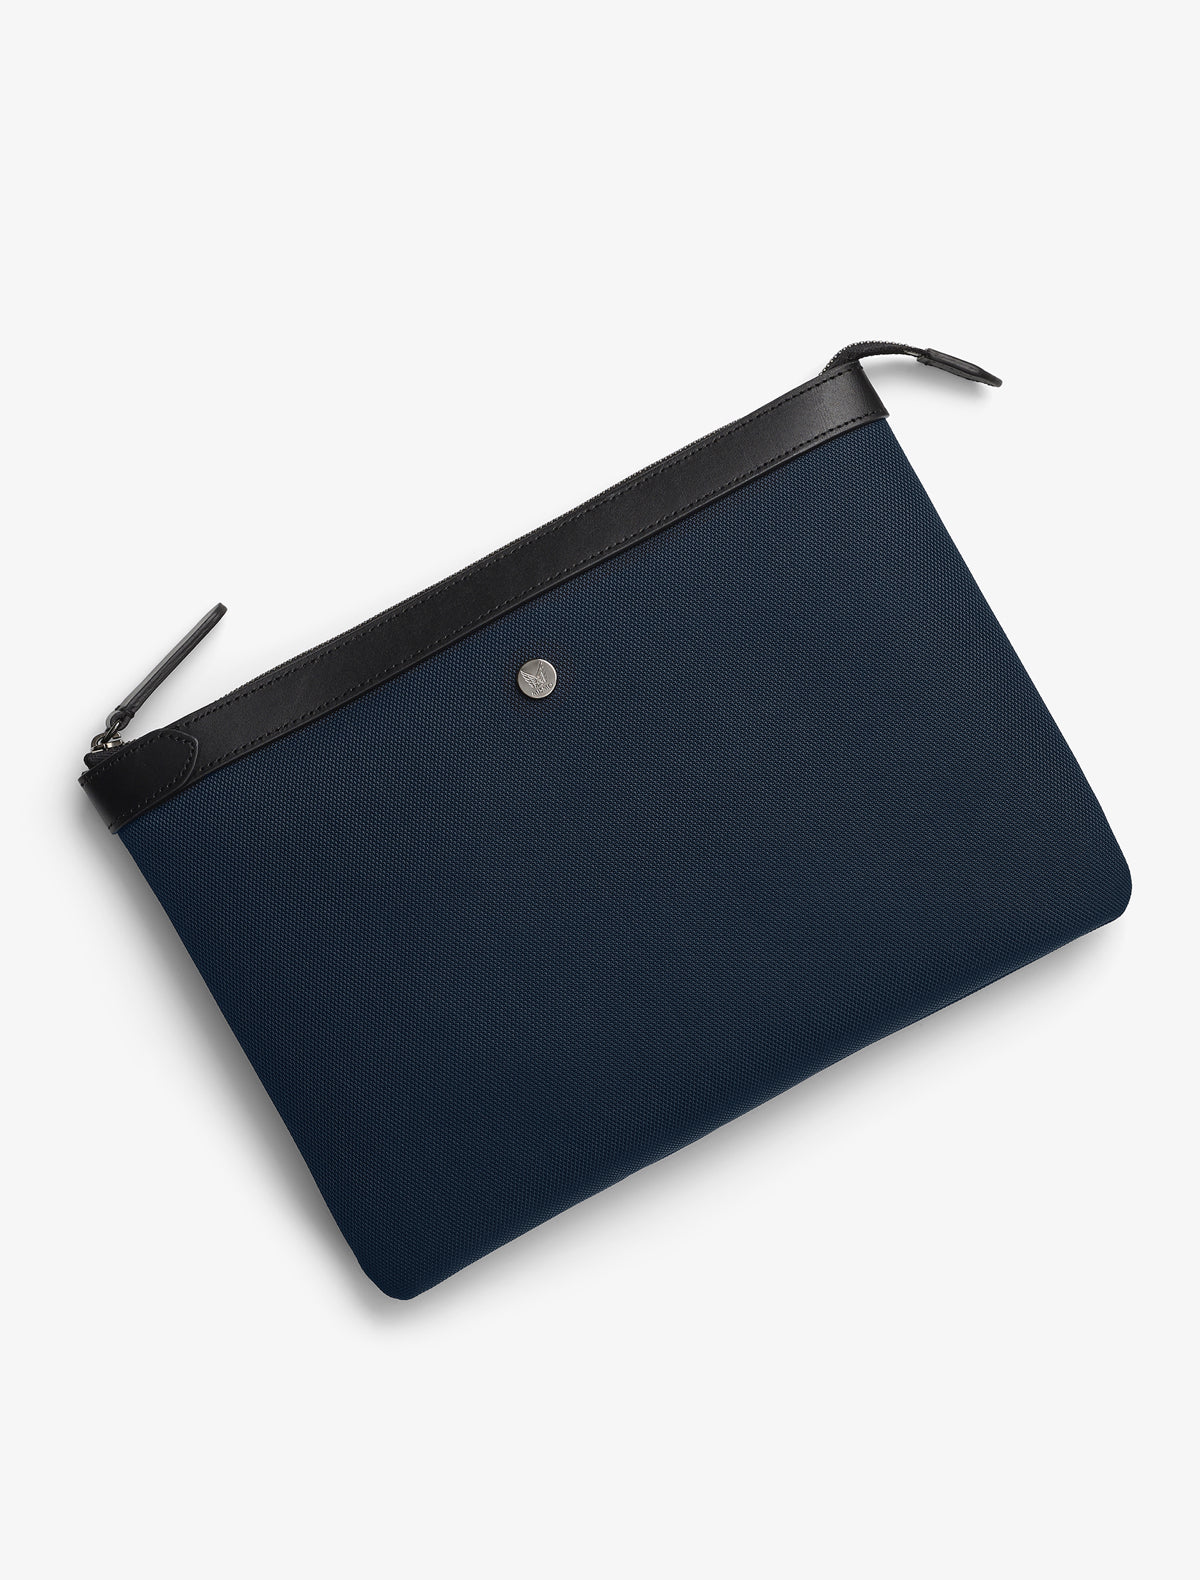 M/S Pouch Large – Deep blue/Black description image